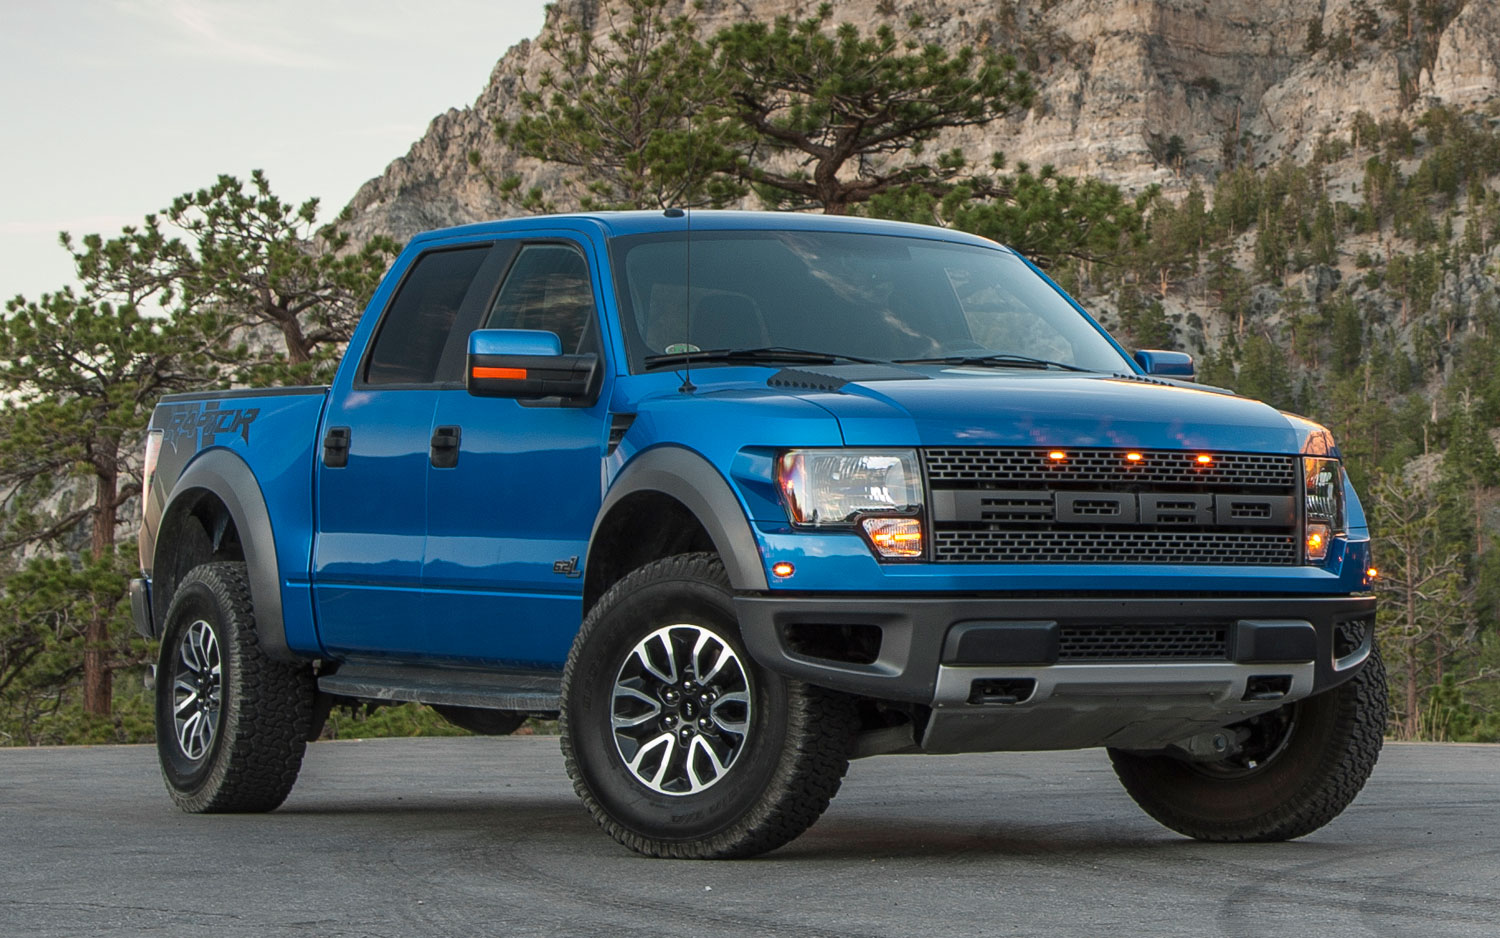 Ford F 150 Raptor HD Wallpaper is wallpaper HD Wallpaper was 1500x938